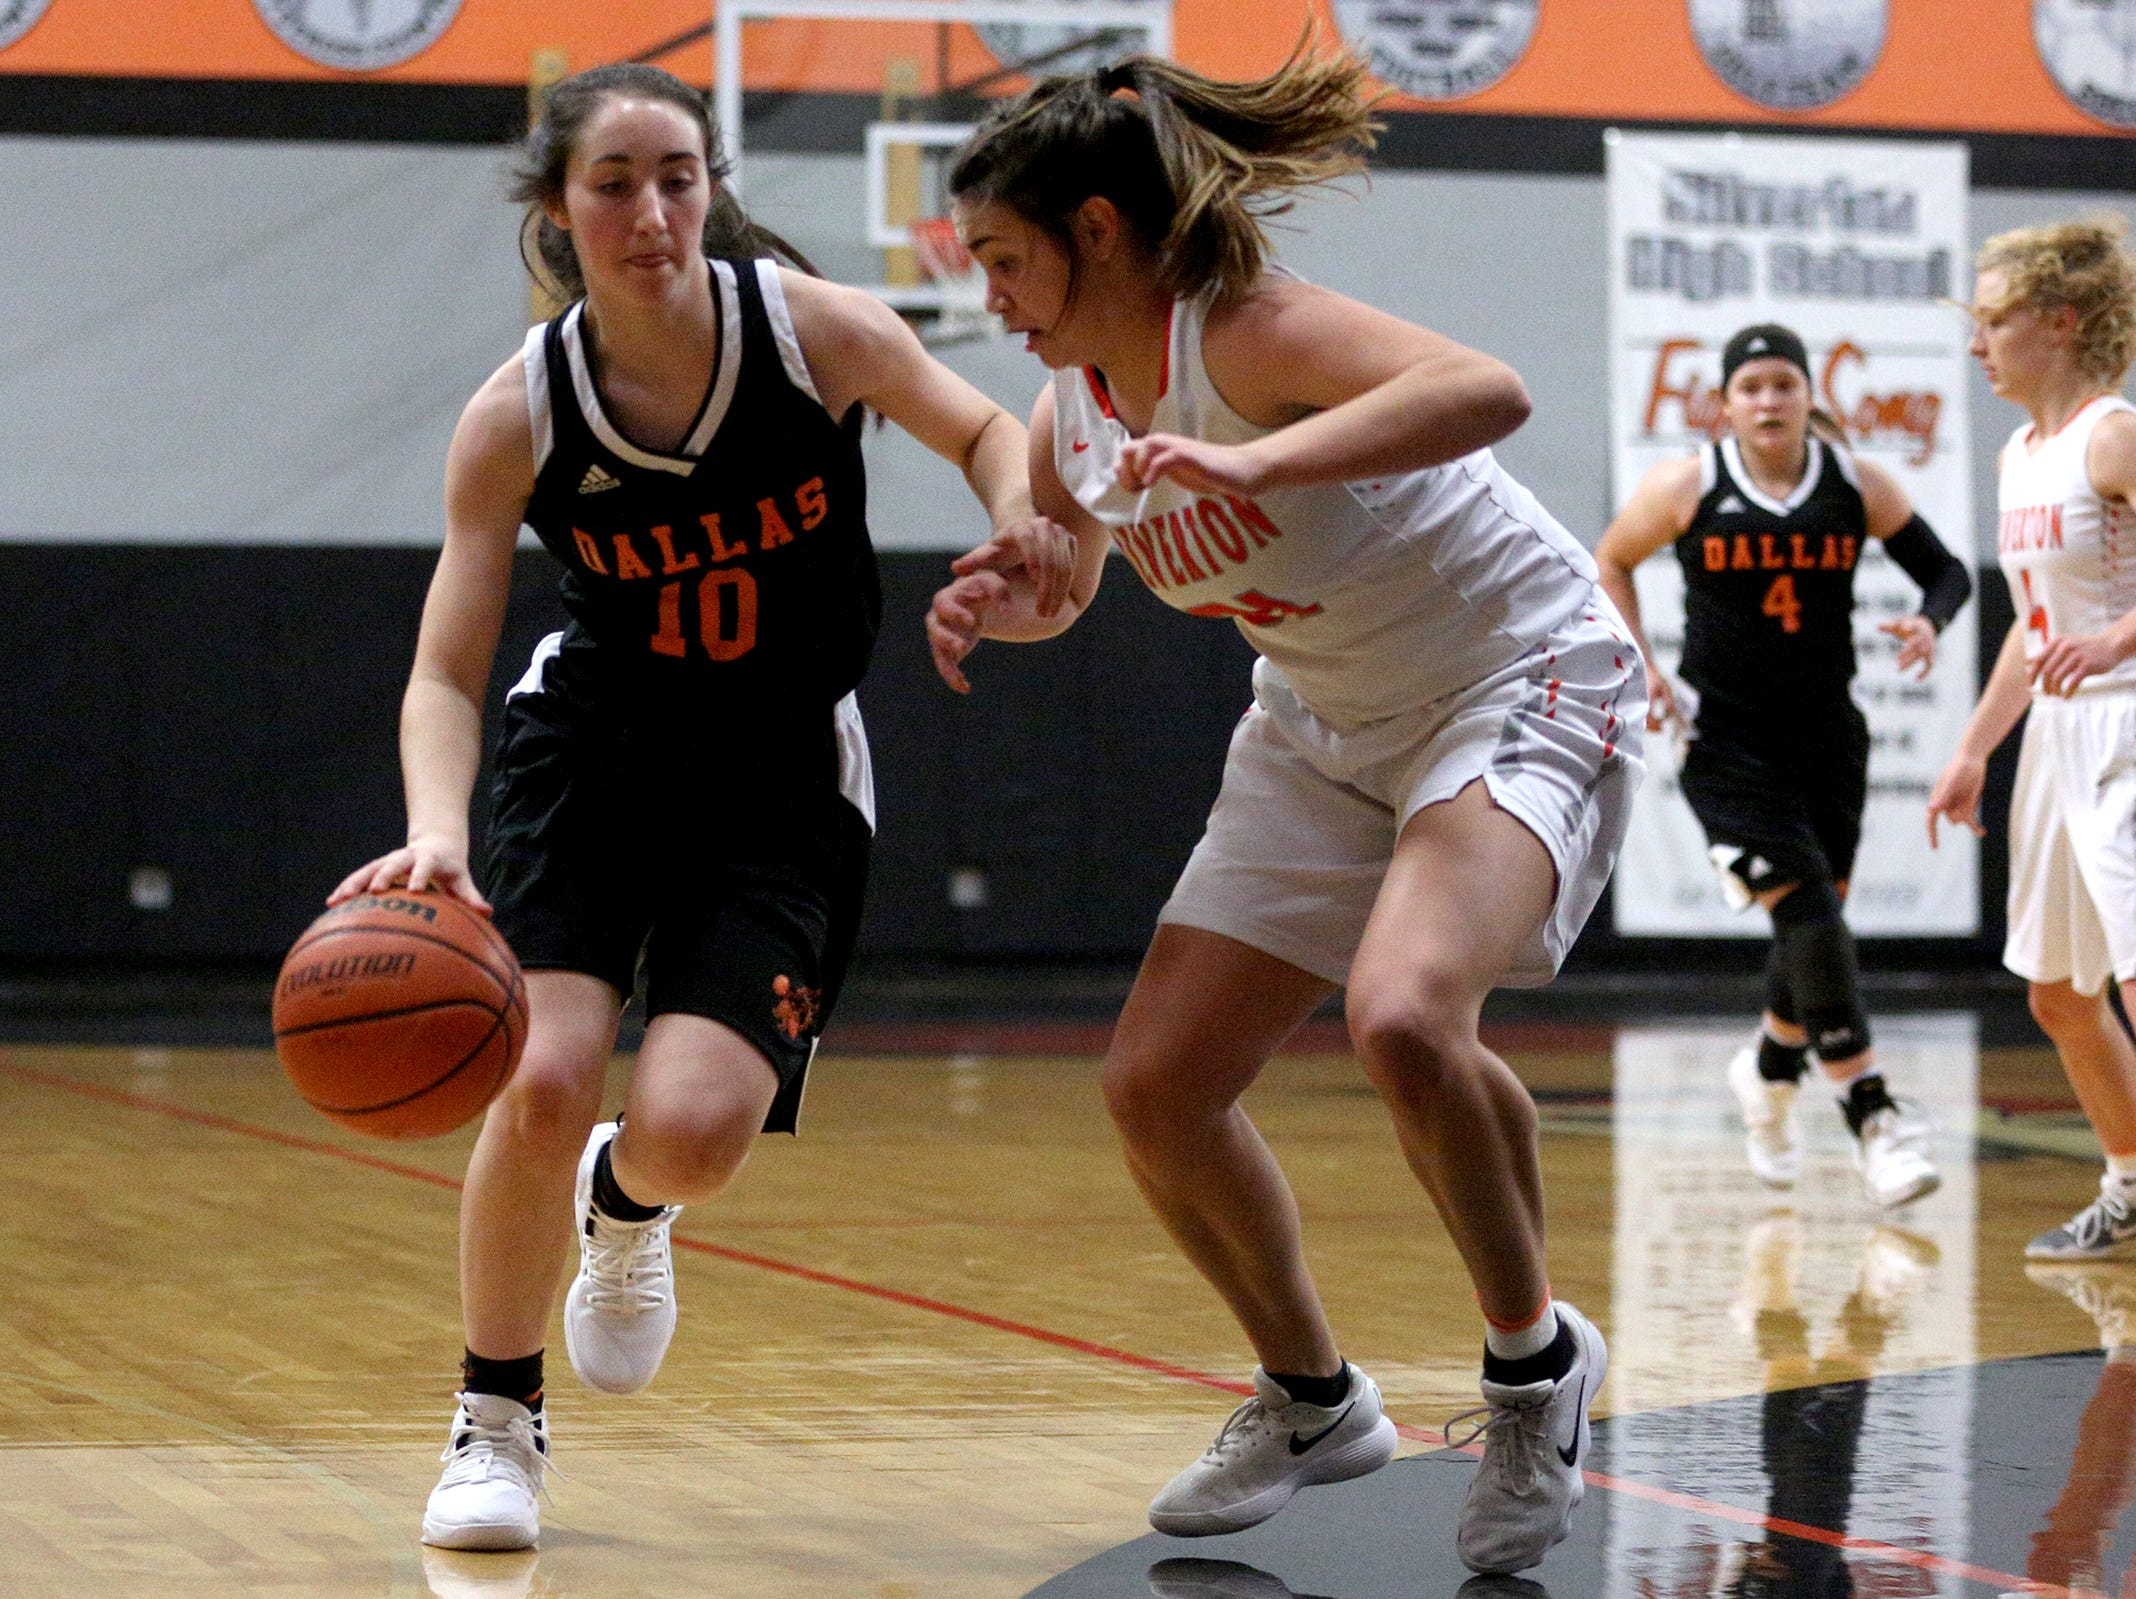 Dallas' Madelyn Loughary (10) makes her way around Silverton's defense during the Dallas High School vs. Silverton High School girls basketball game in Silverton on Tuesday, Dec. 8, 2019.